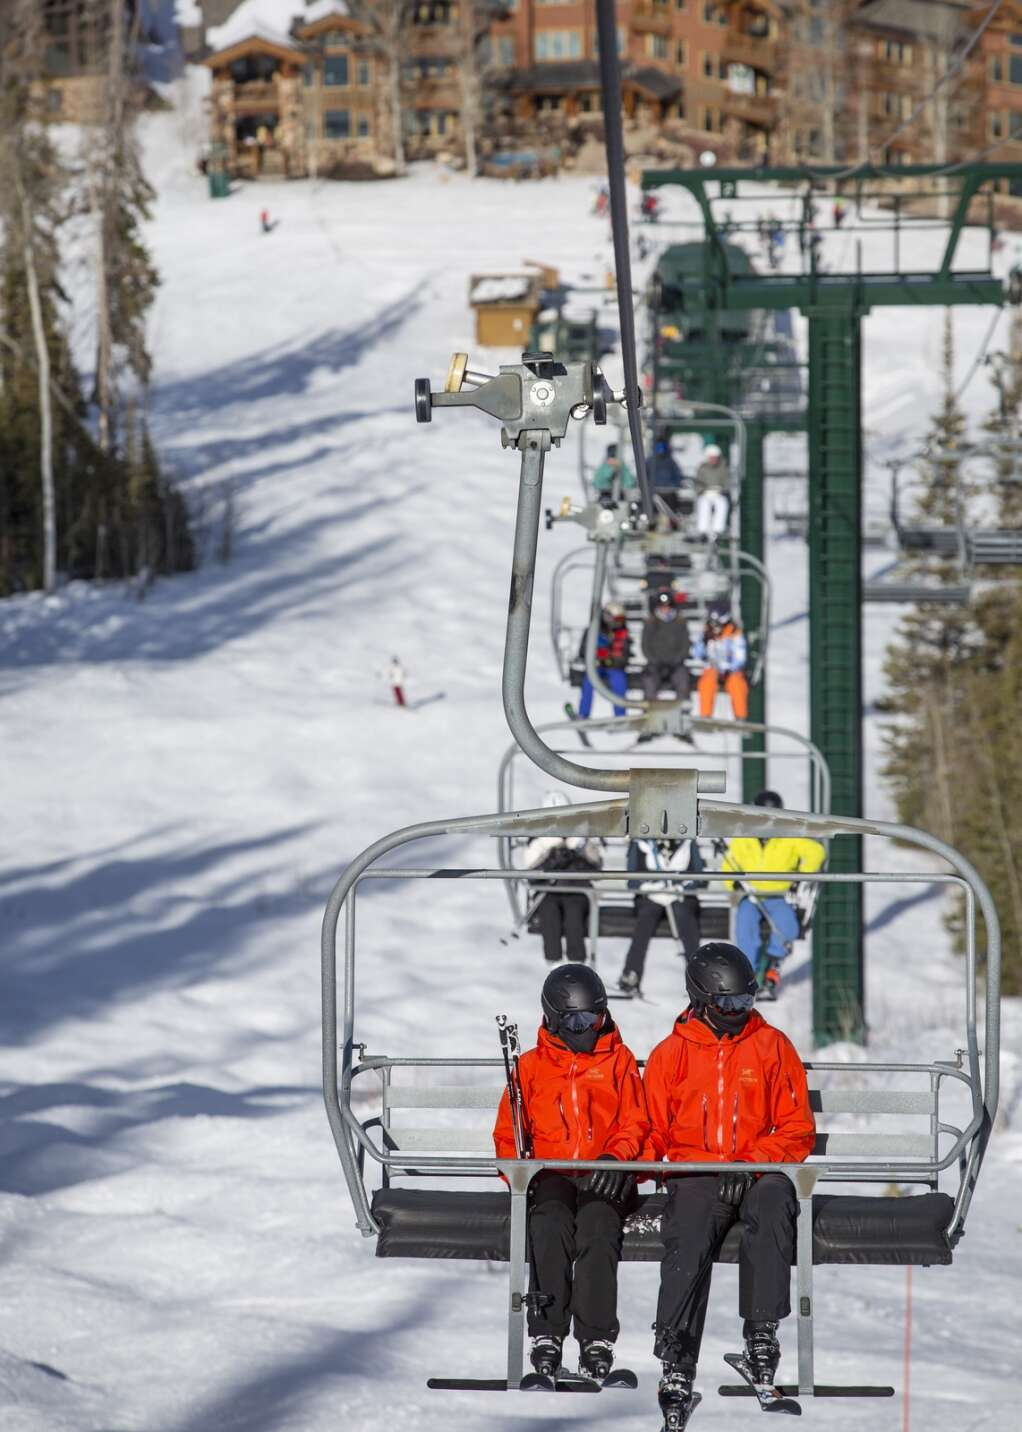 Belinda McConnell, left, and her husband Mike McConnell ski together down Lost Boulder, a blue run off of Flagstaff Mountain at Deer Valley Resort, on Thursday, Jan. 14, 2021. | Tanzi Propst/Park Record